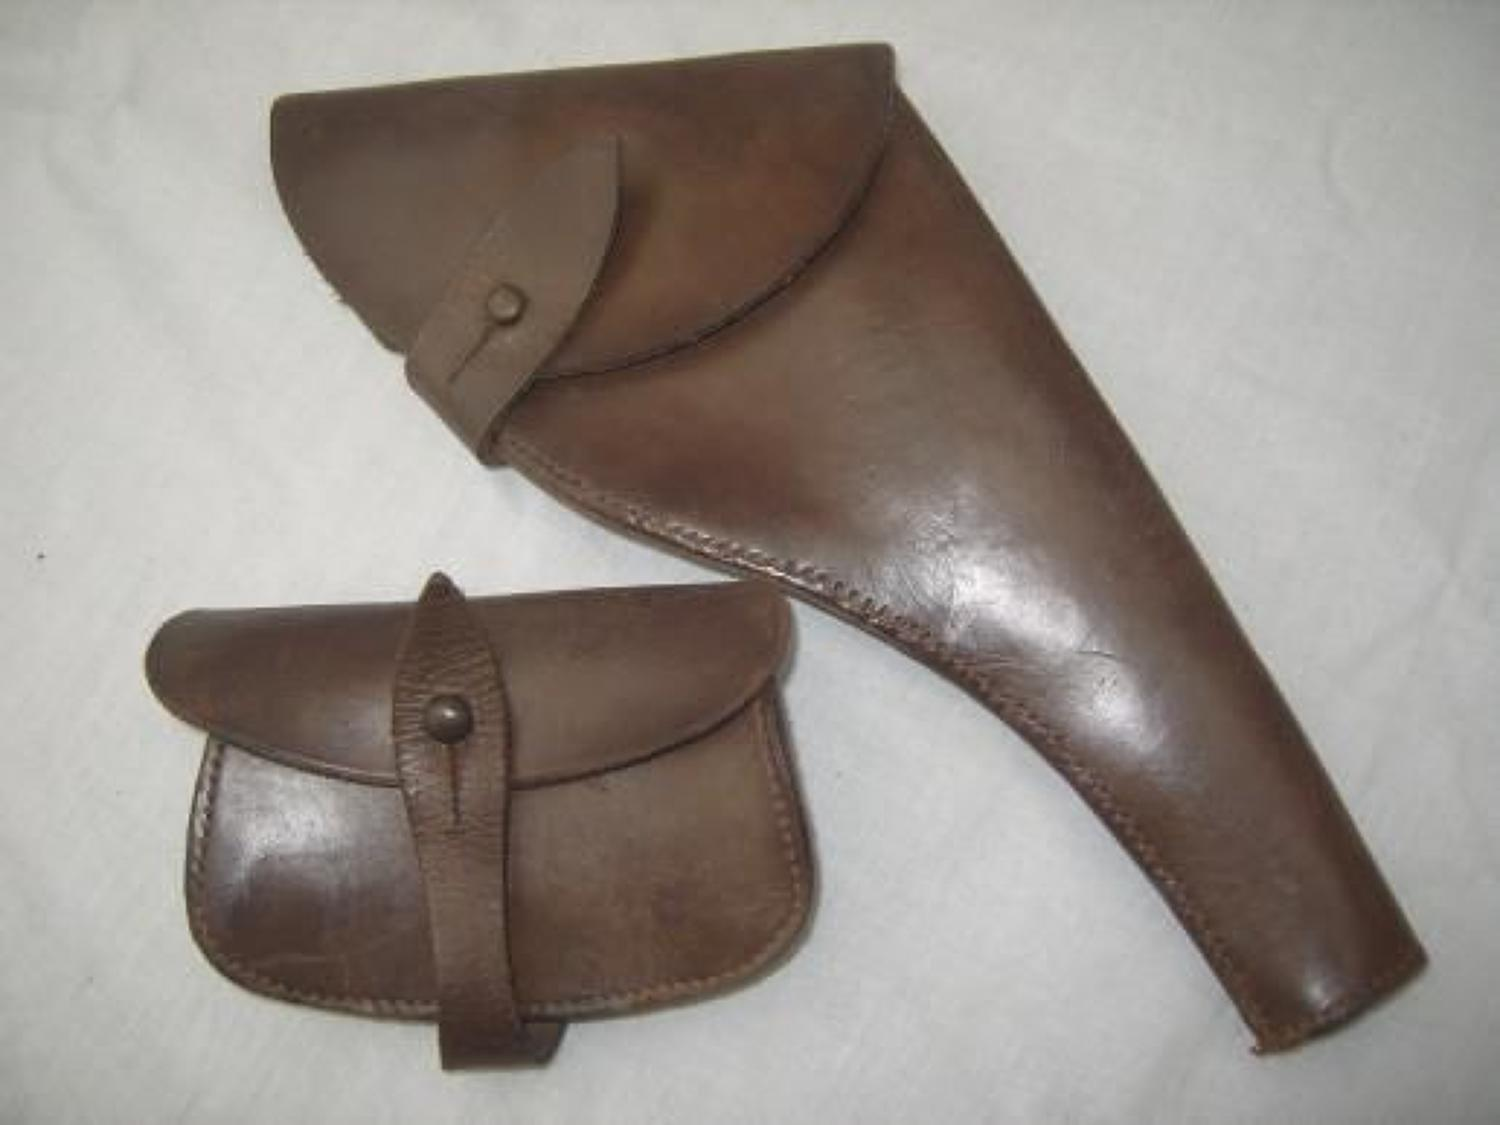 British Army Officers Leather Webley Revolver holster & Ammunition Pouch.